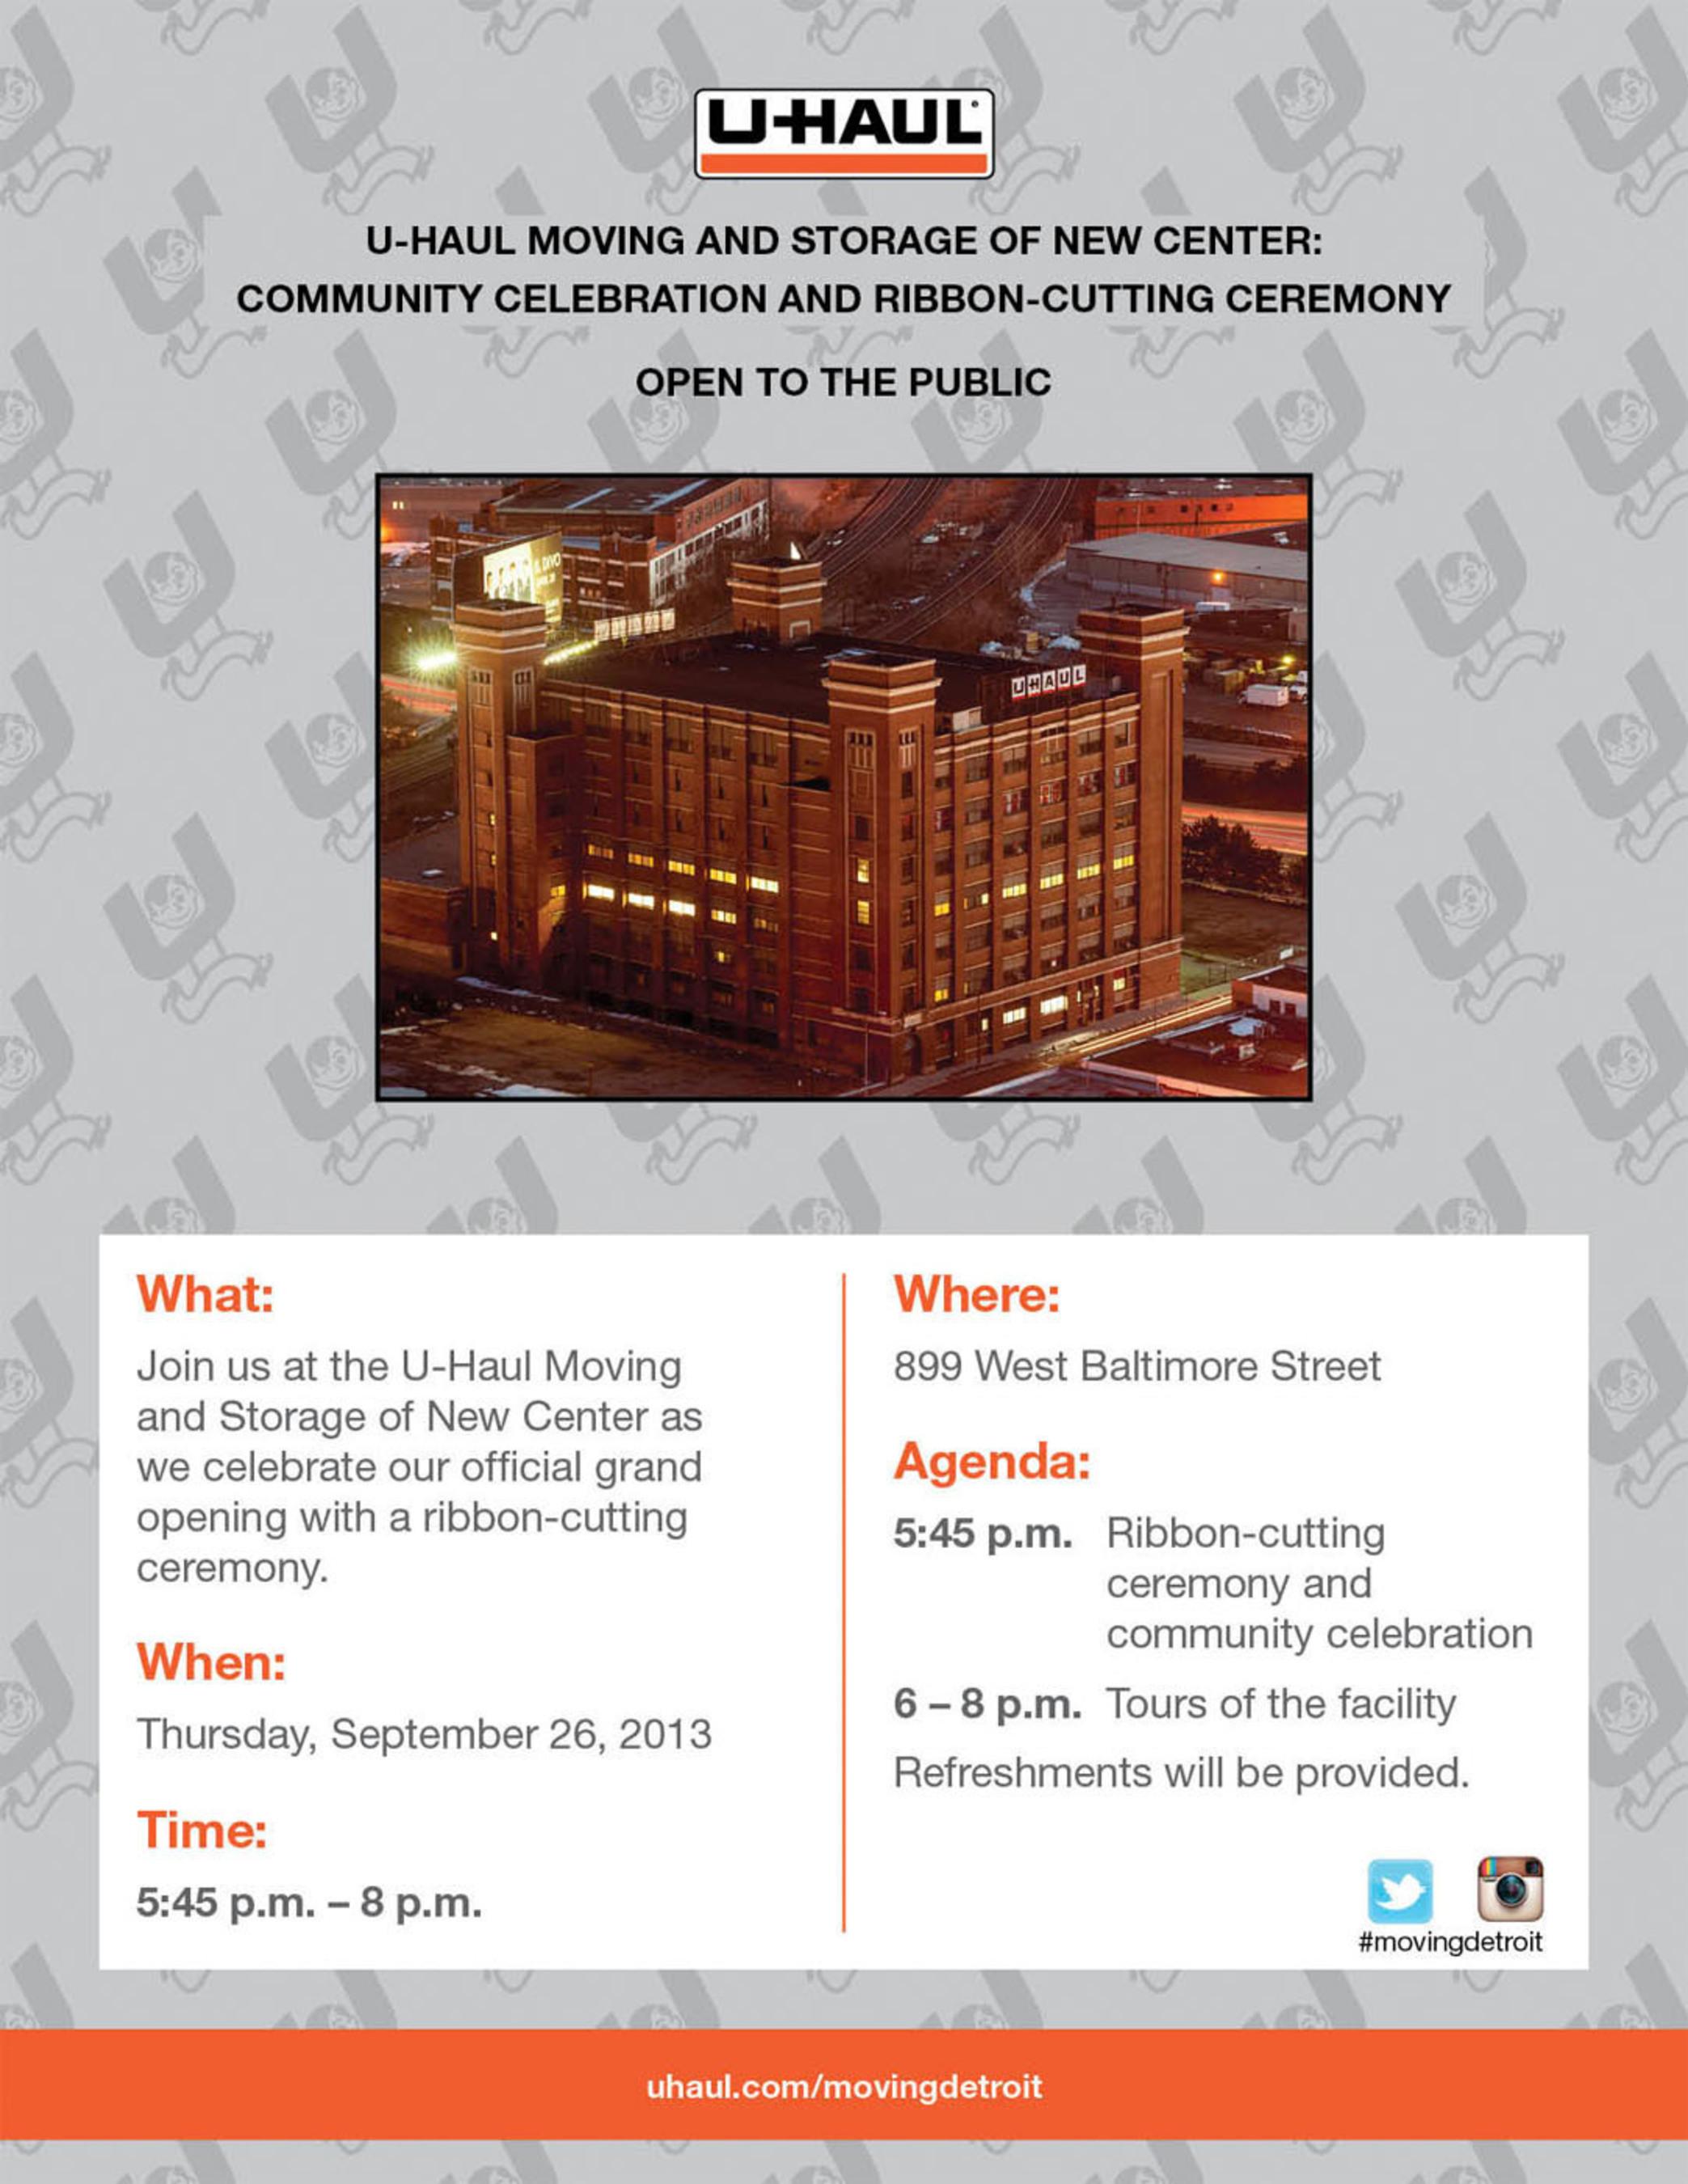 Grand Opening Community Celebration Tomorrow at U-Haul Moving and Storage of New Center